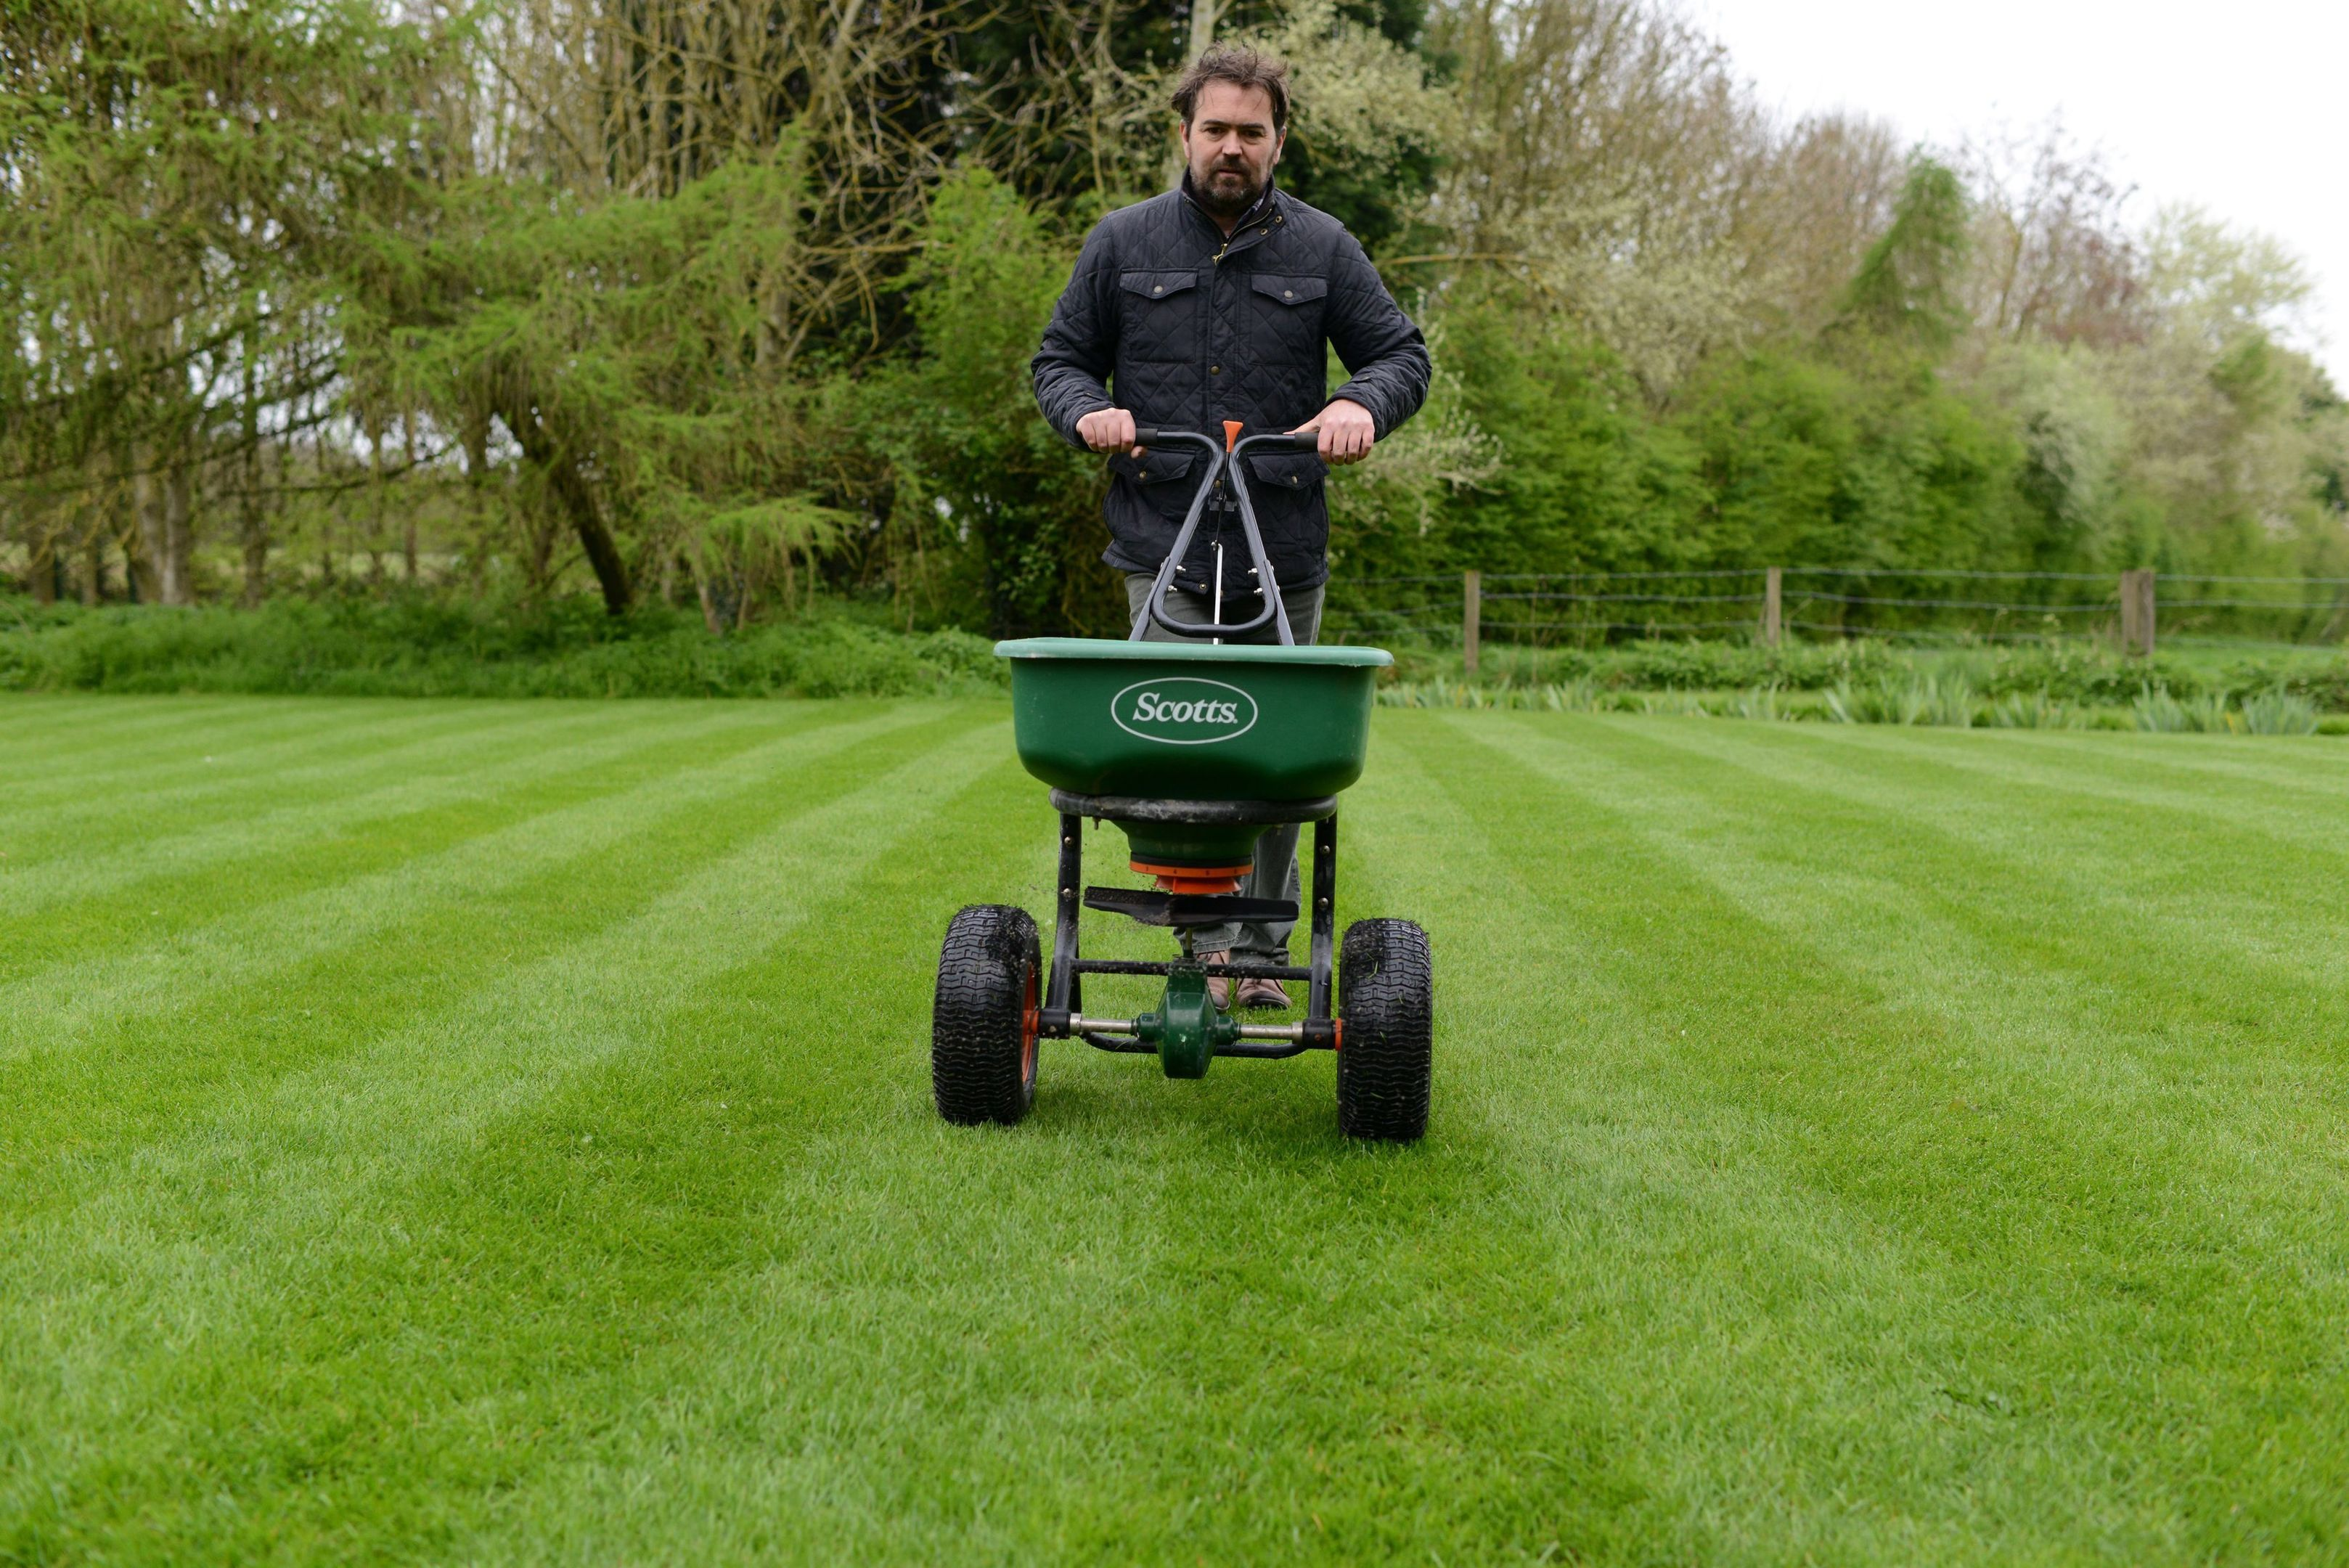 expert tips:  David Hedges-Gower is the author of Modern Lawn Care.